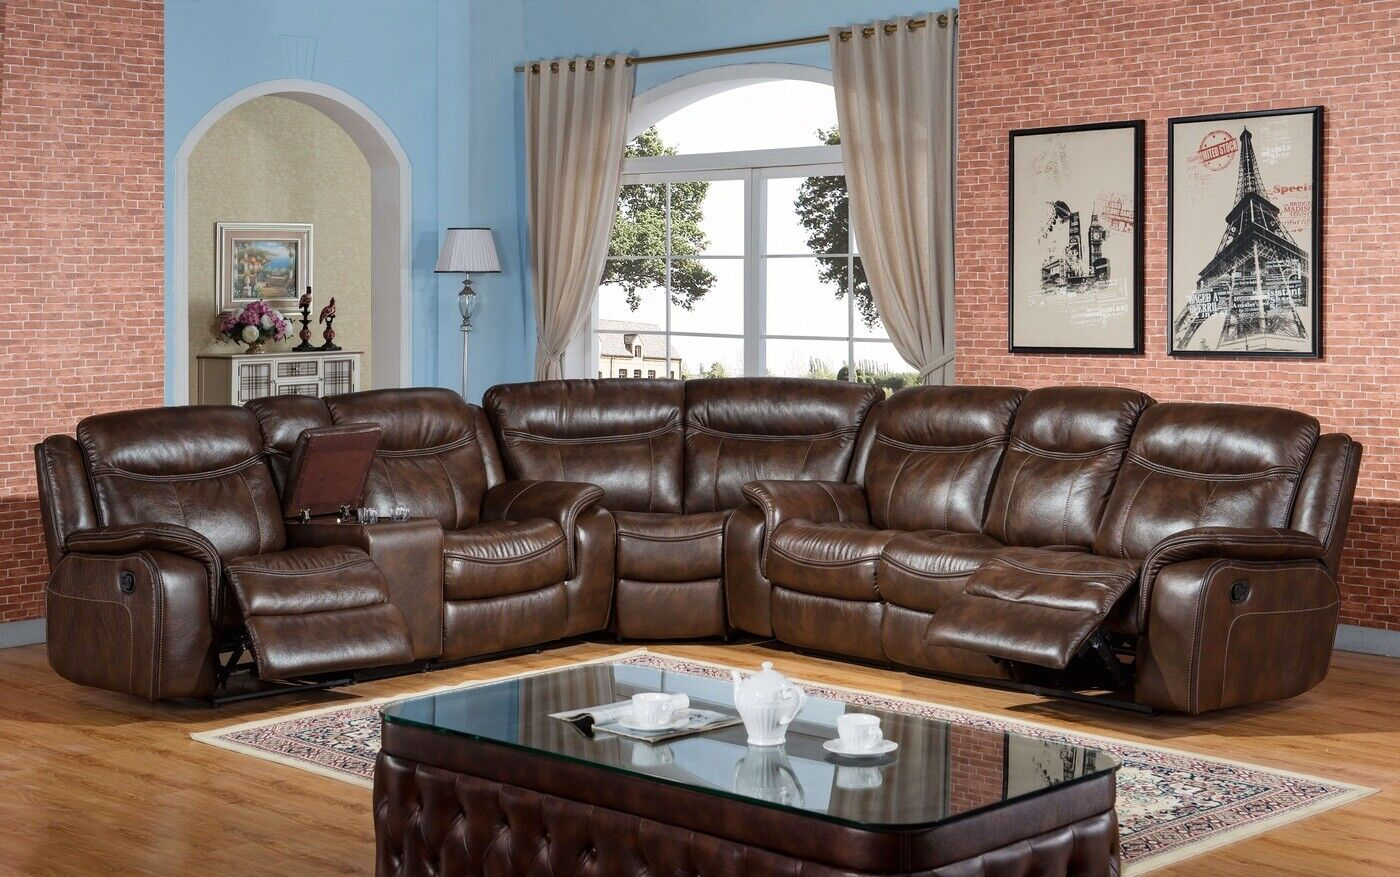 details about new braylon classic brown reclining sectional sofa in premium leather air fabric